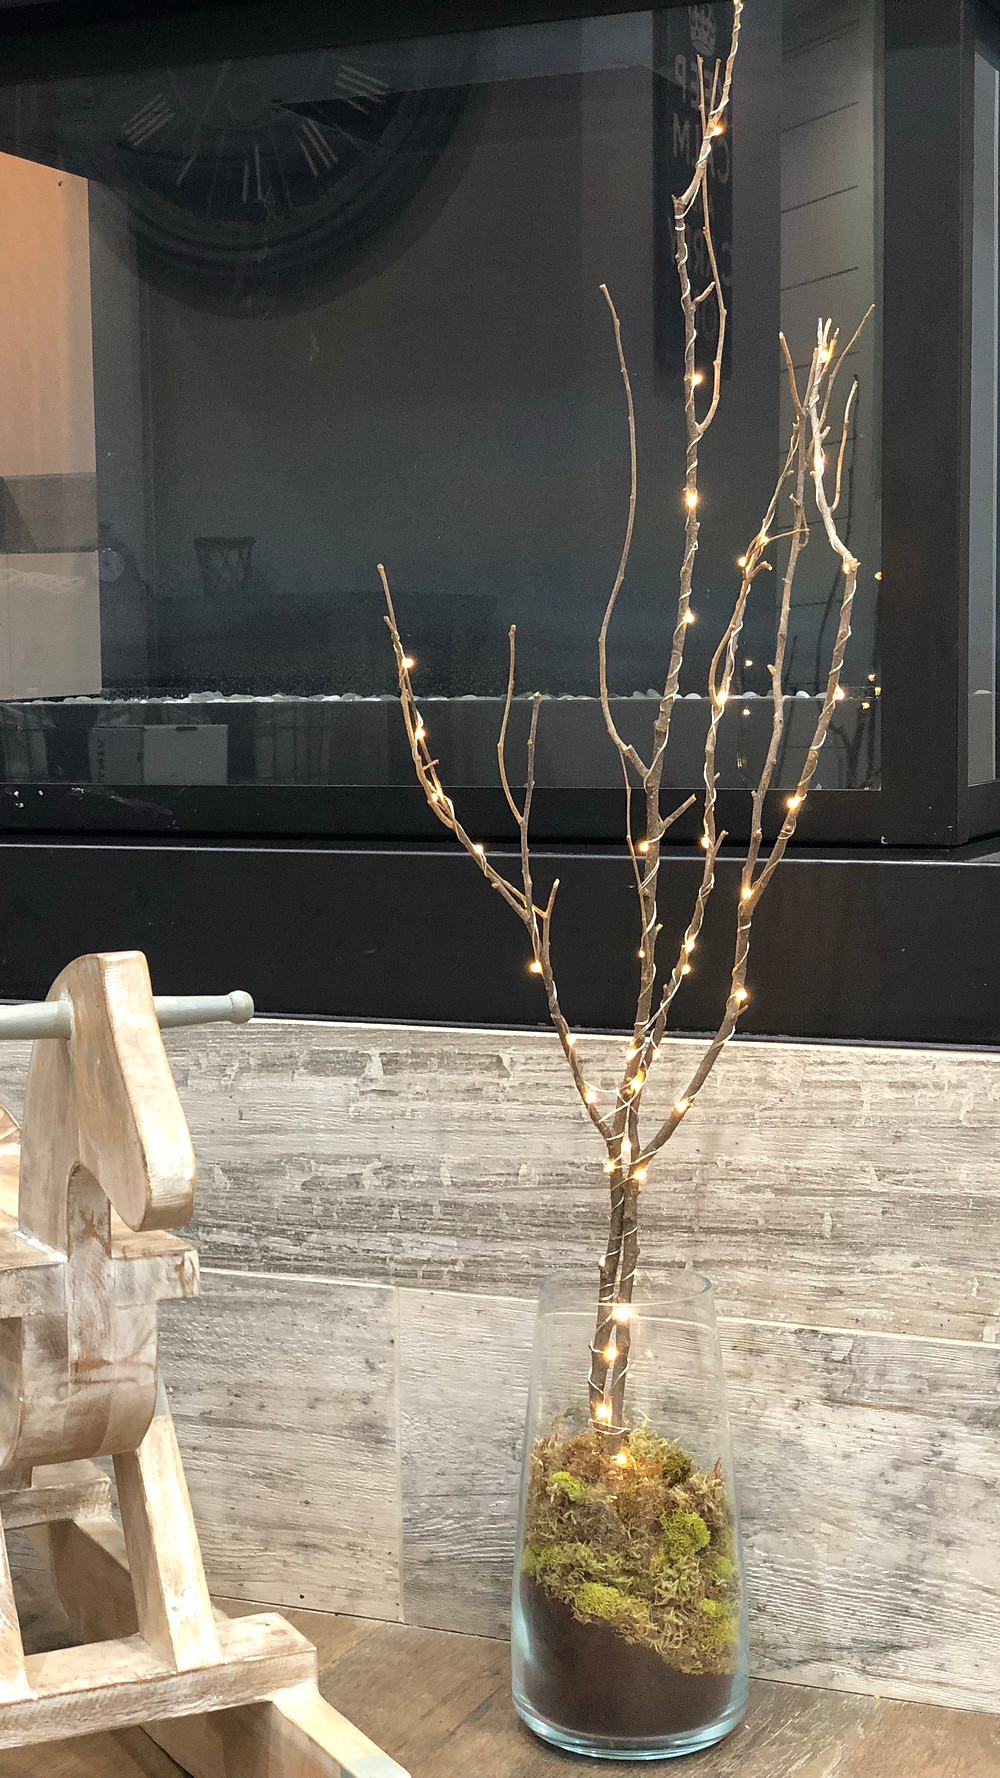 RUSTIC MODERN CHRISTMAS: Restoration Hardware Inspired DIY. Creating a winter decor staple for a fraction of the cost. Check it out at LOVINGLYGRAY.com or @lovinglygraydesign on Instagram. Happy Holidays!